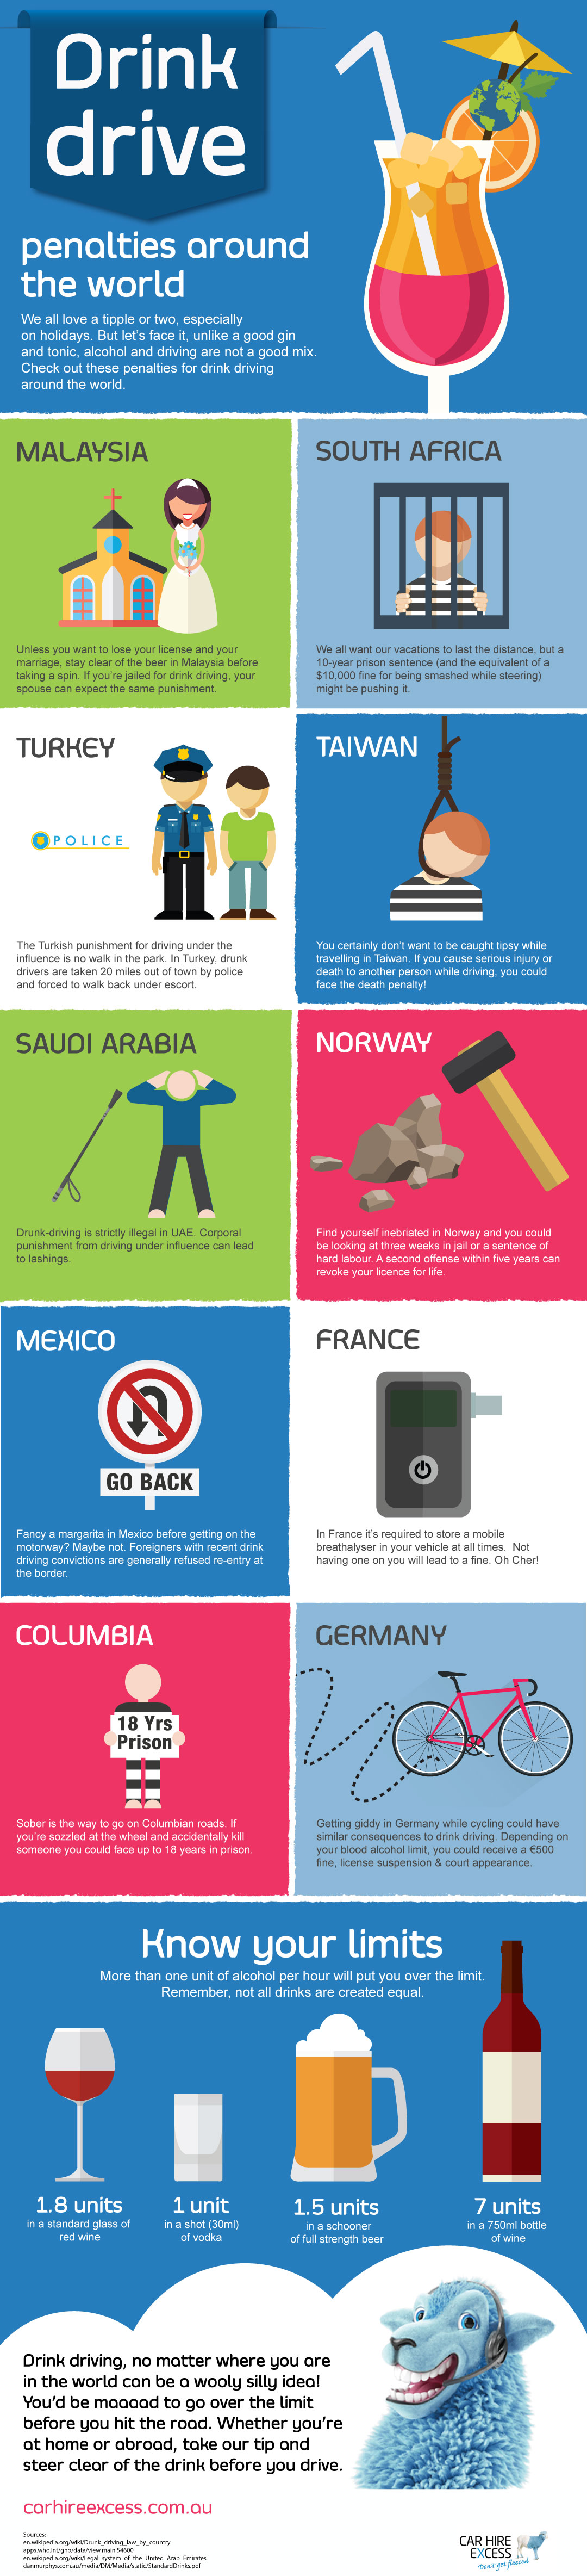 drink driving penalties around the world